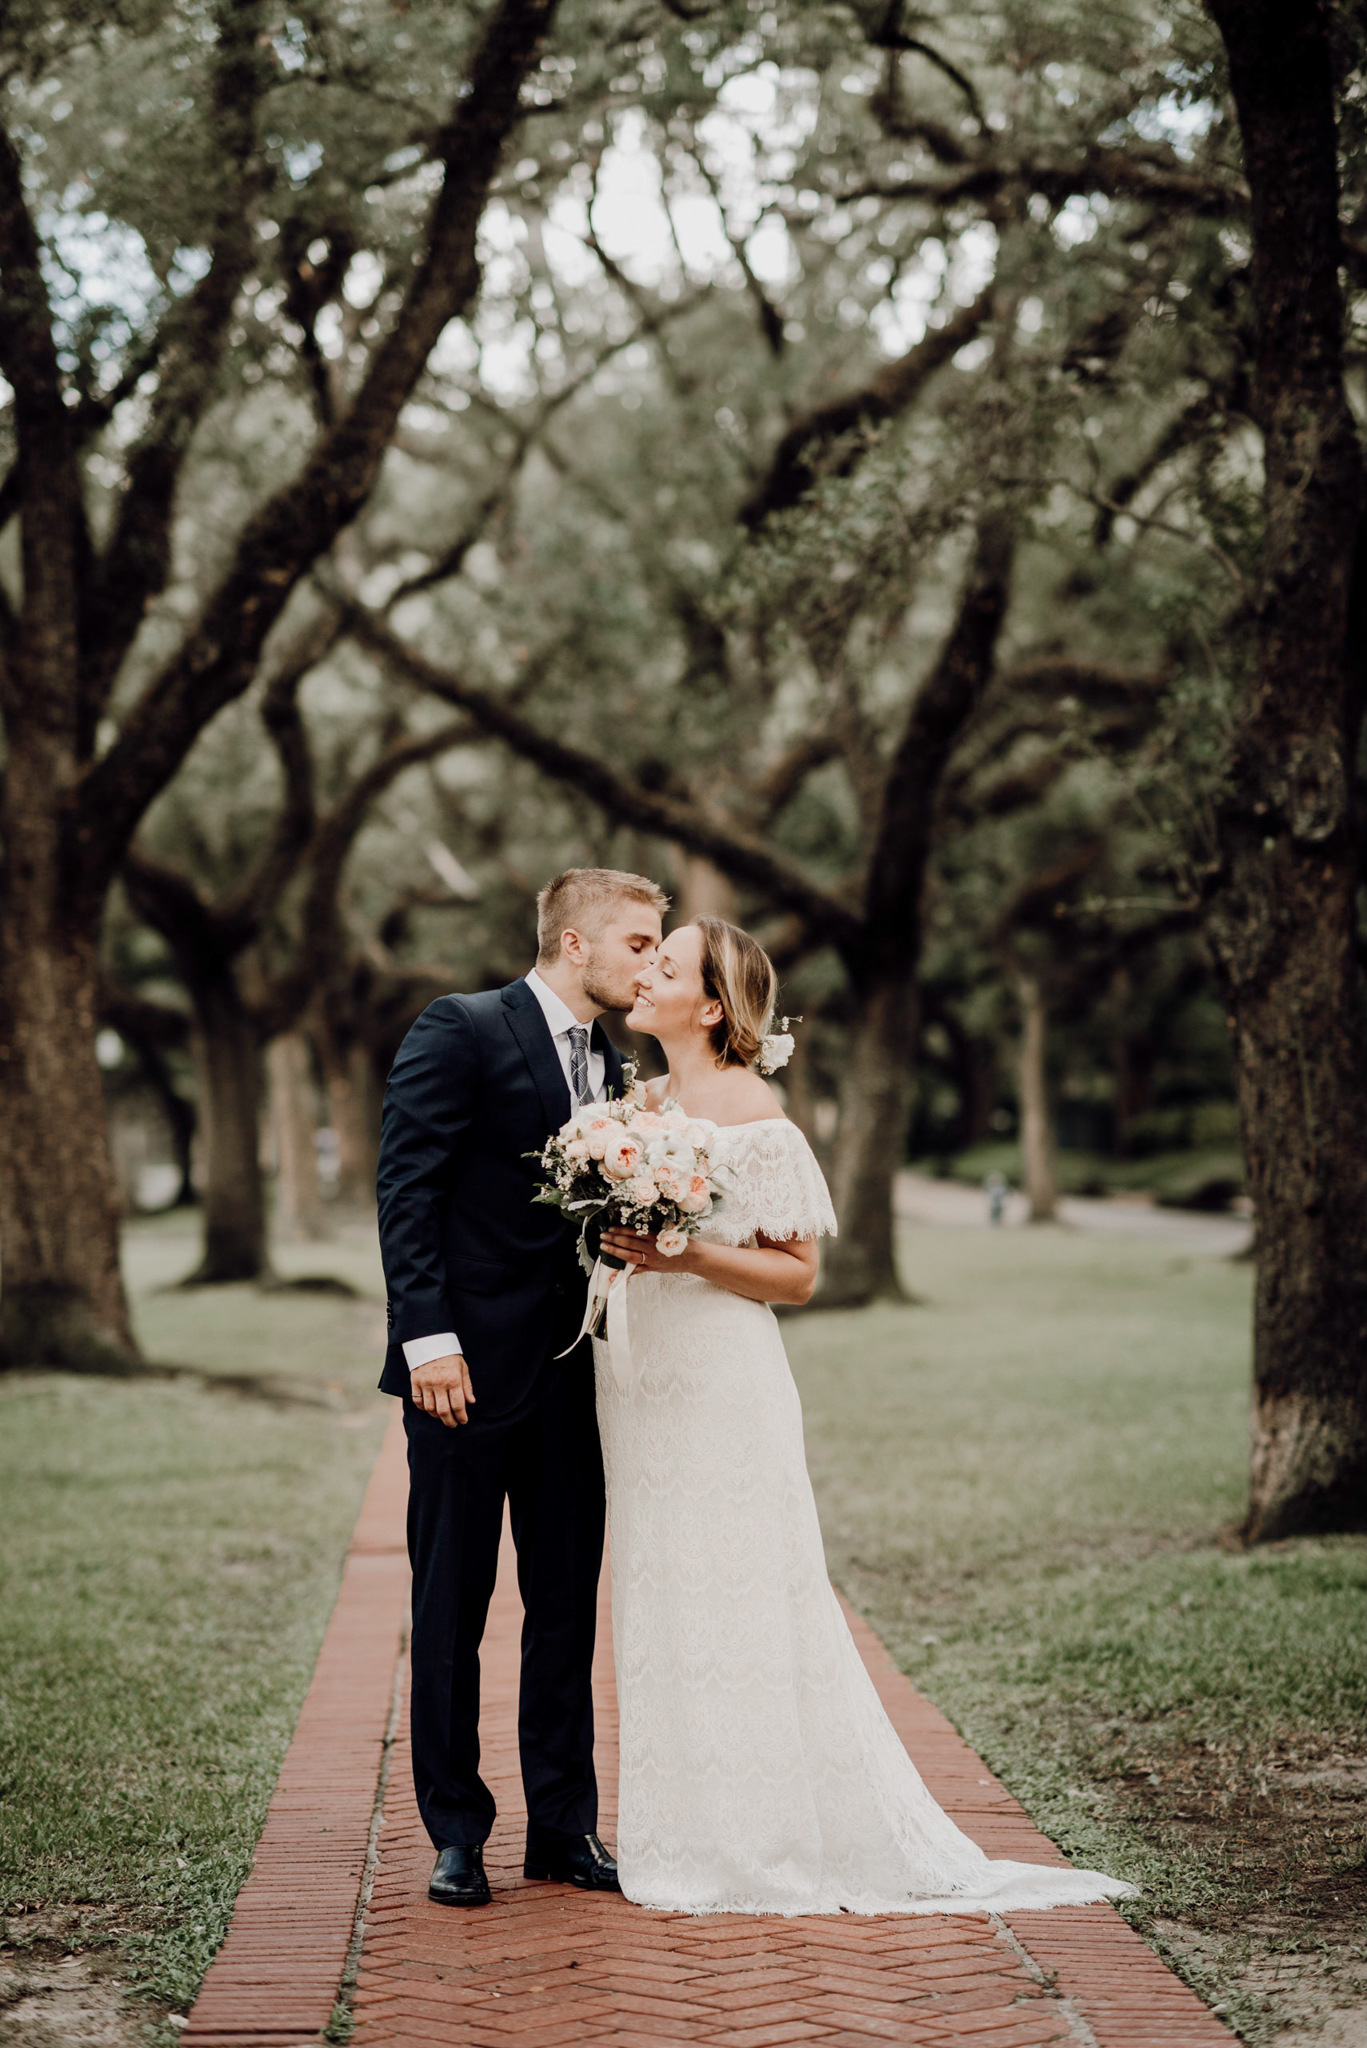 Houston Wedding Photographer-North Blvd Intimate Elopement- Houston Wedding Photographer -Kristen Giles Photography-51.jpg